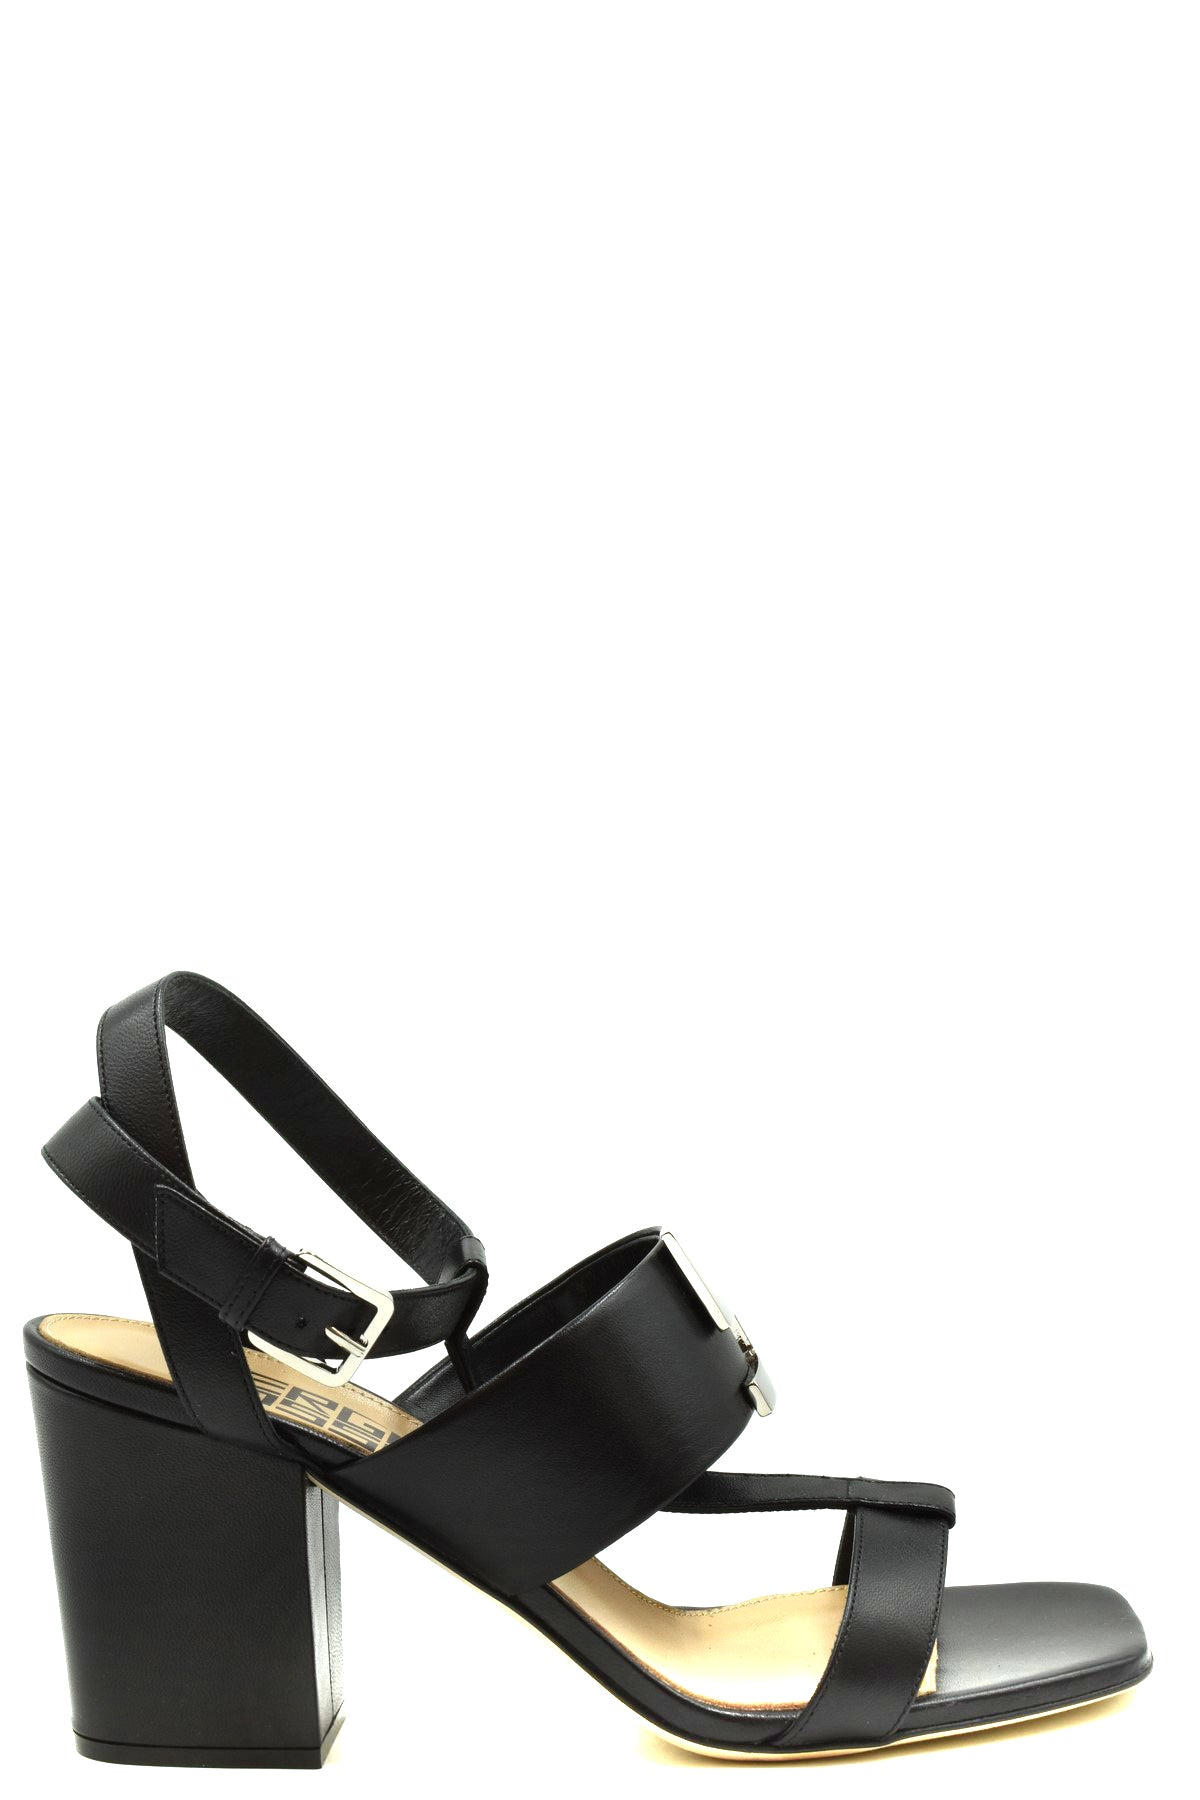 Shoes Sergio Rossi-Women's Fashion - Women's Shoes - Women's Sandals-36-Product Details Manufacturer Part Number: A90360 Mnan07 1000Year: 2020Composition: Leather 100%Size: EuHeel'S Height: 7 CmGender: WomanMade In: ItalySeason: Spring / SummerType Of Accessory: ShoesMain Color: BlackTerms: New With Label-Keyomi-Sook